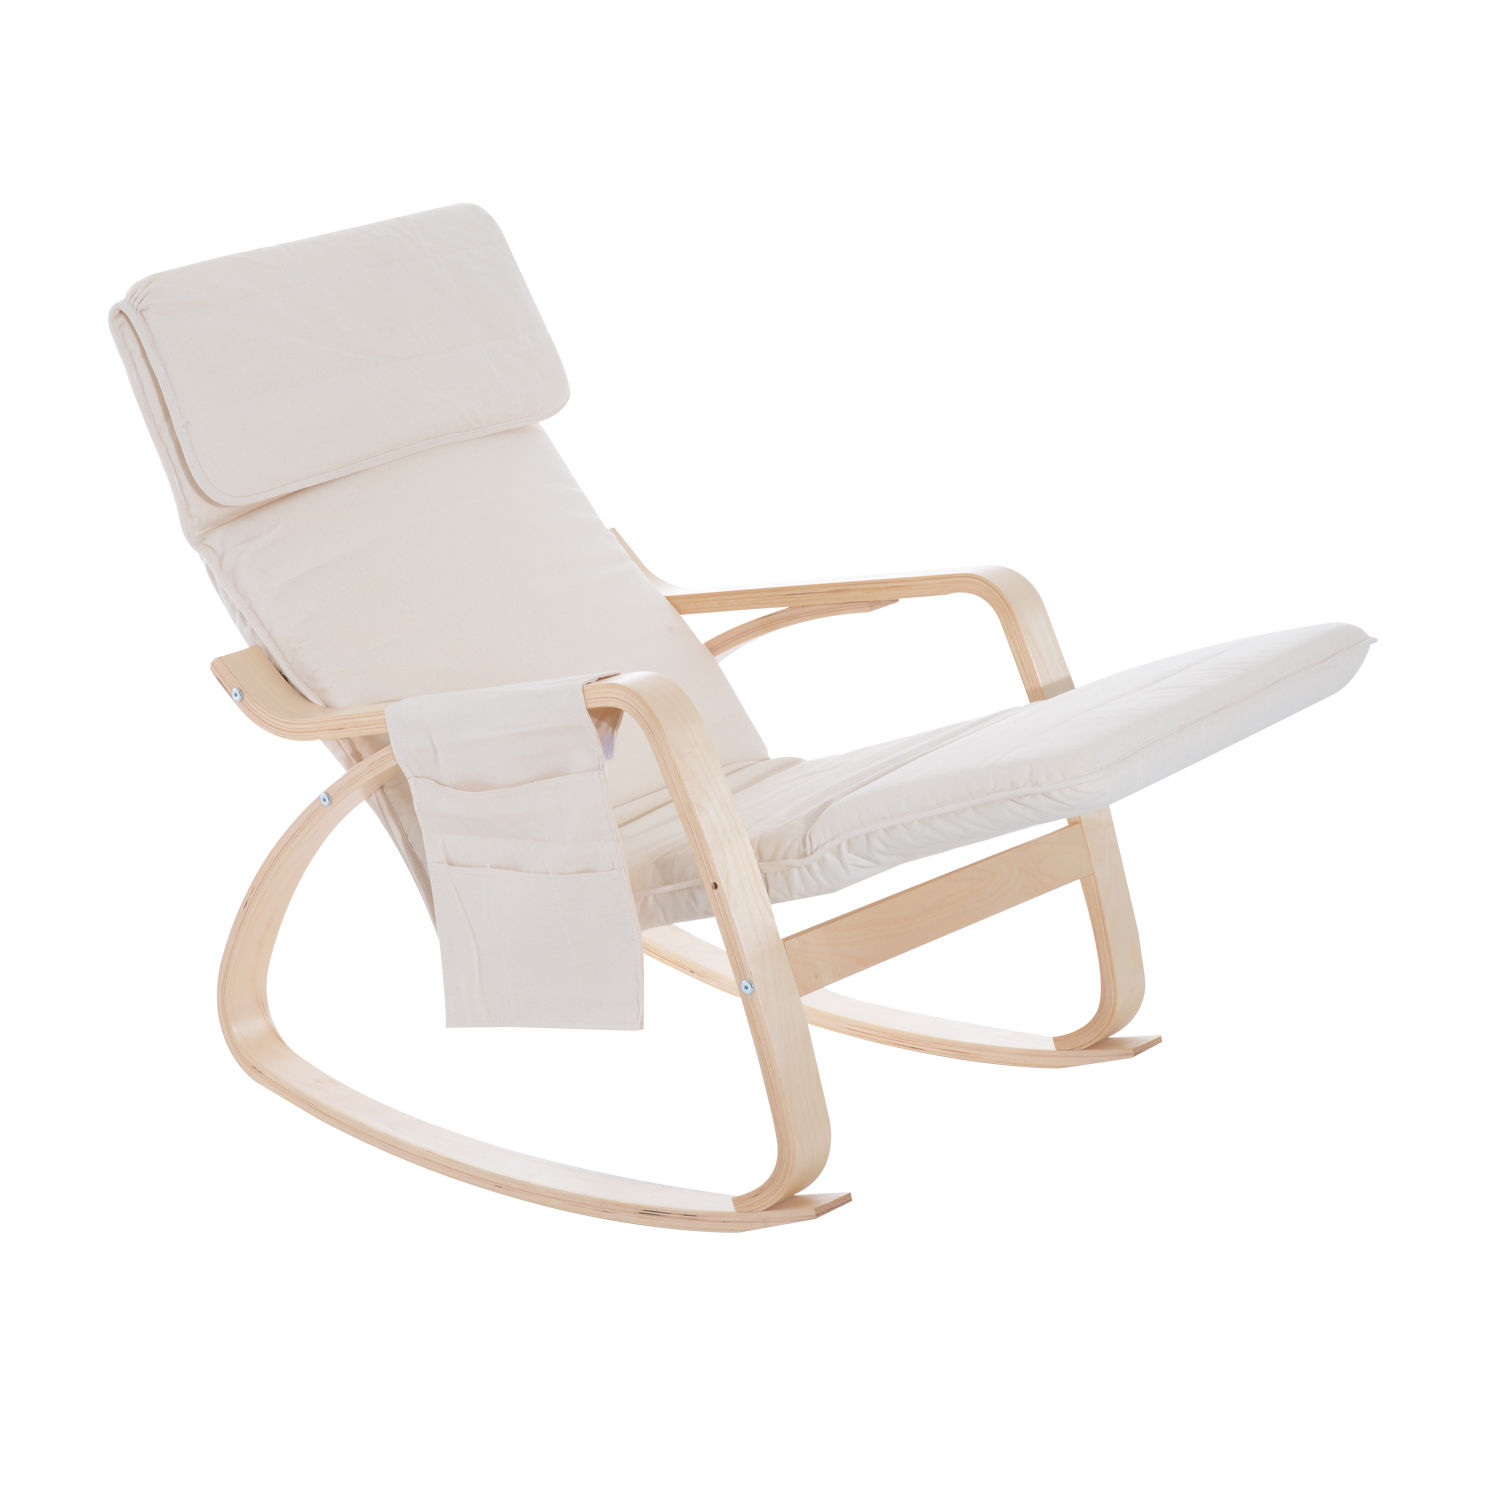 easy chairs with integral footrest hammock chair stand ikea comfortable modern furniture rocking lounge recliner